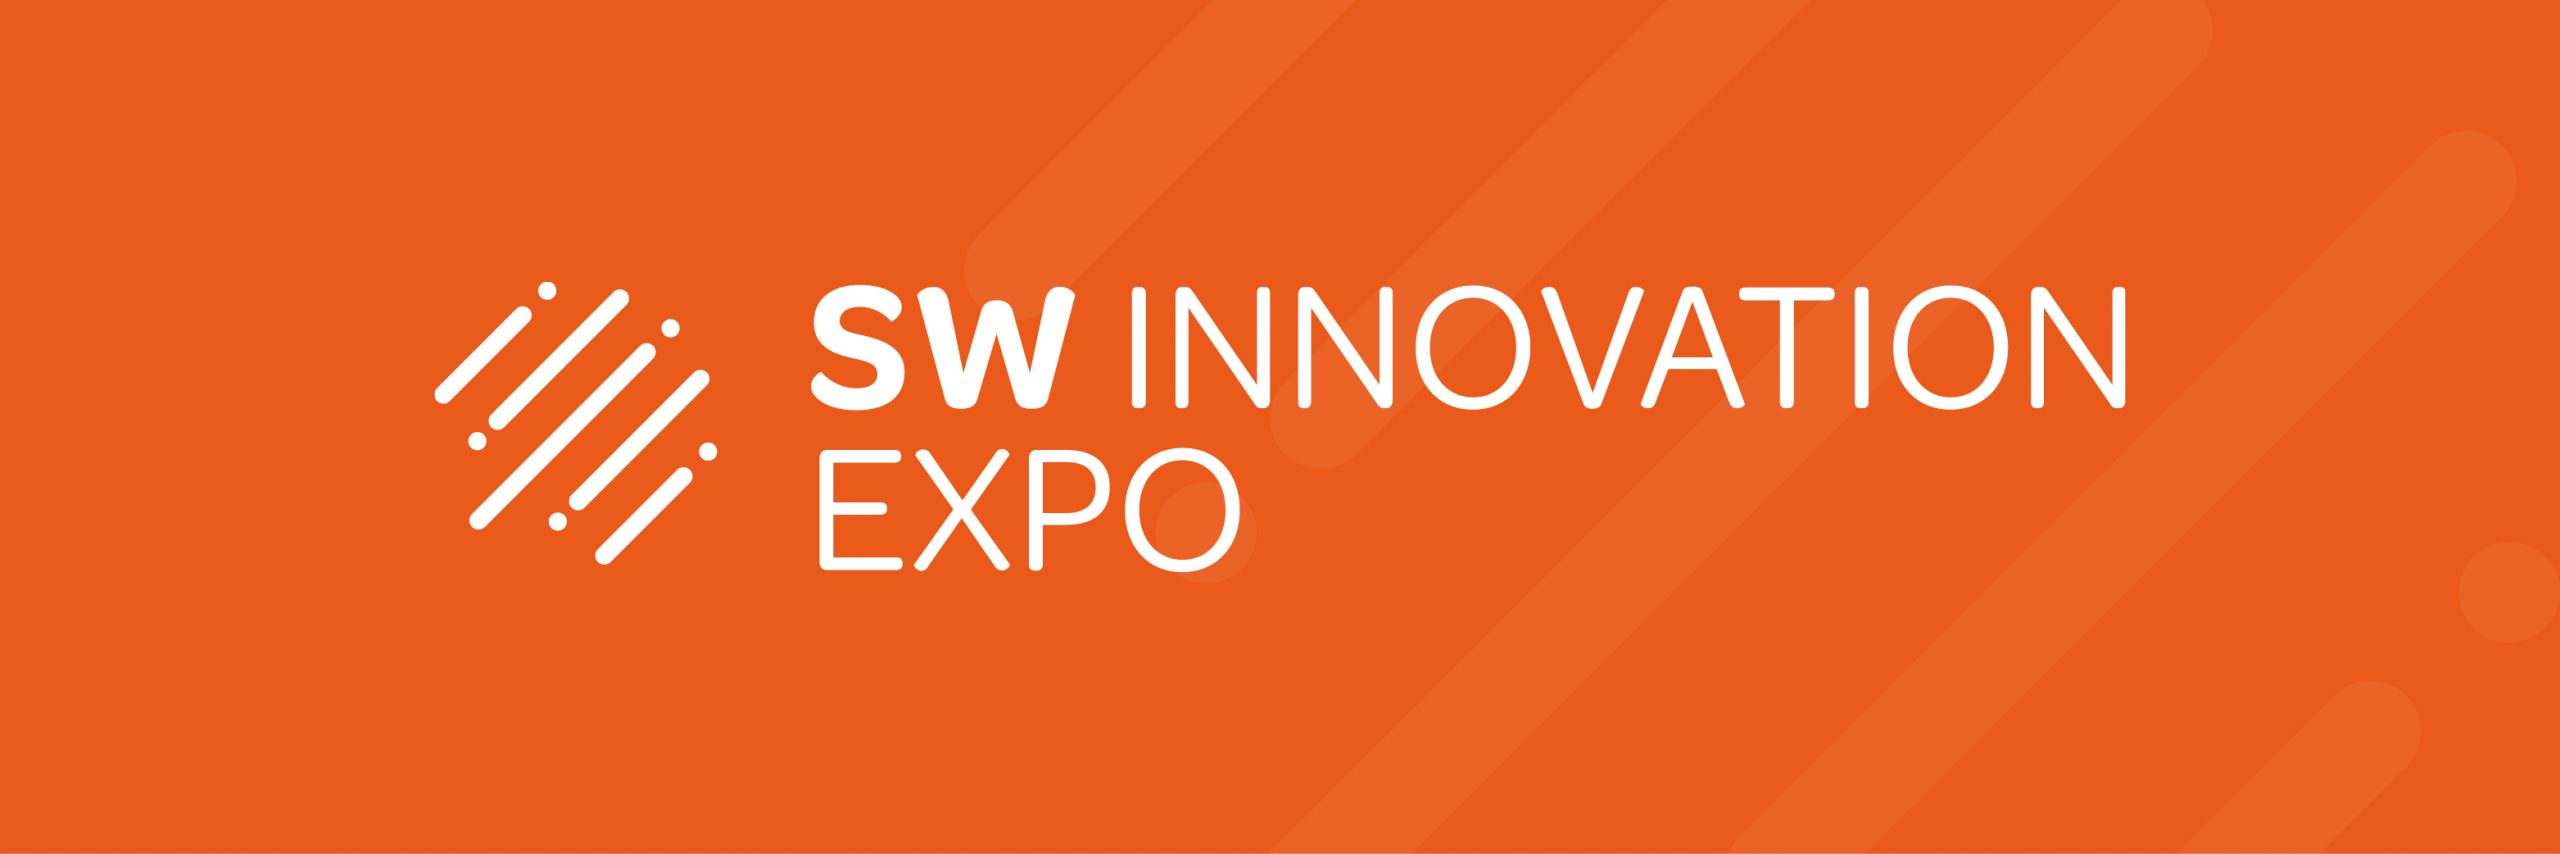 SW Innovation Expo